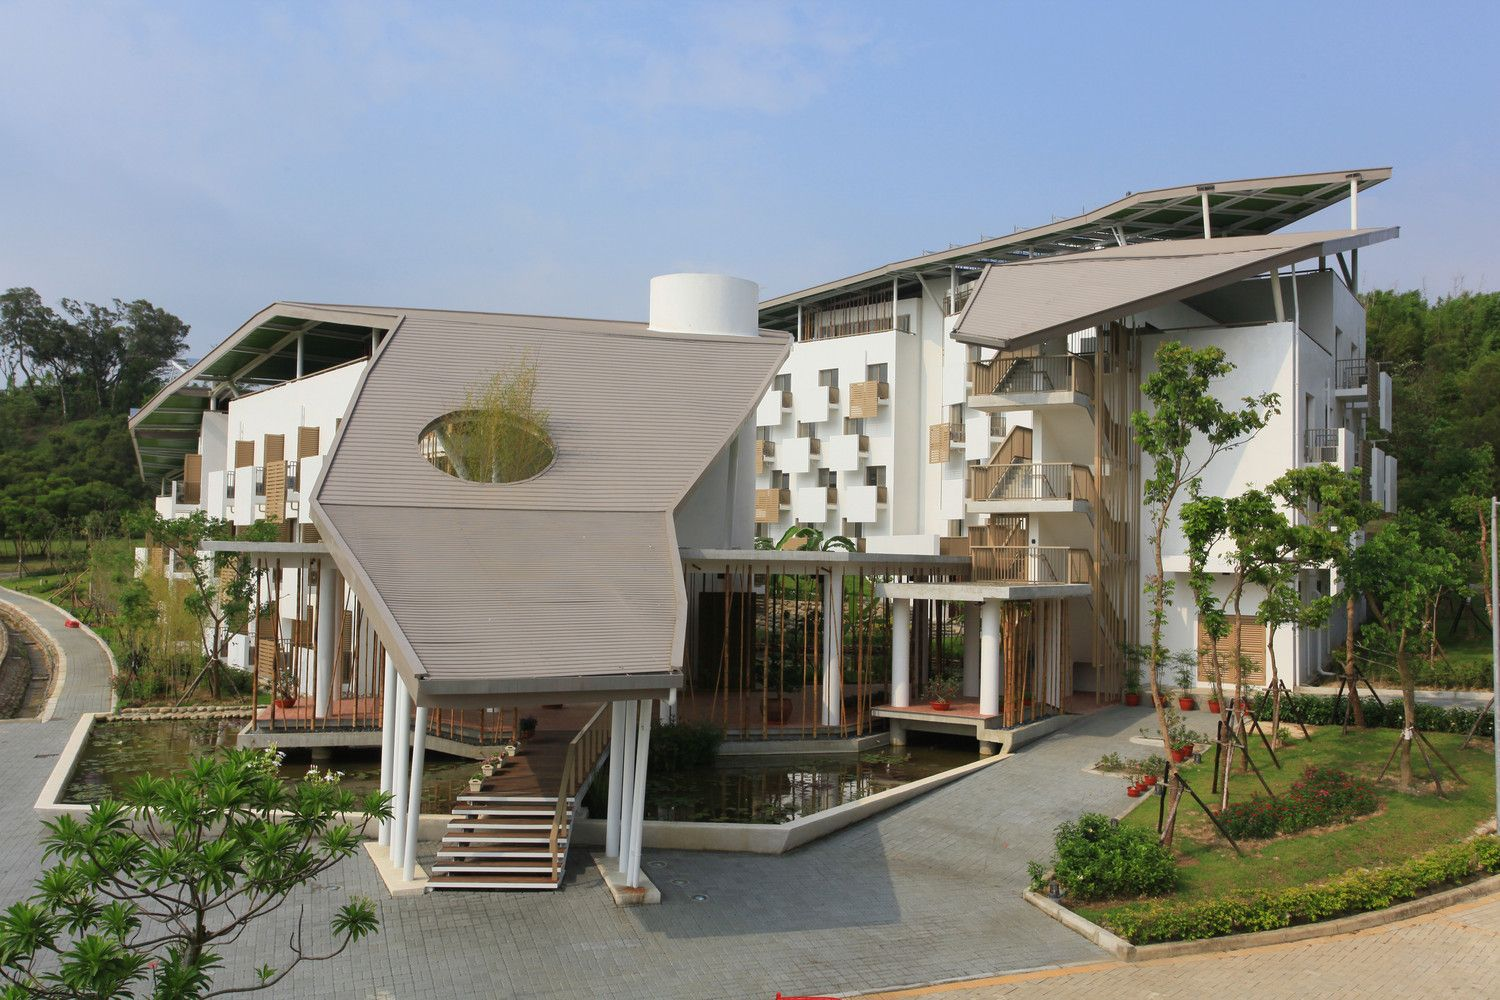 Architecte Bures Sur Yvette gallery of dormitories for itri southern taiwan campus / bio